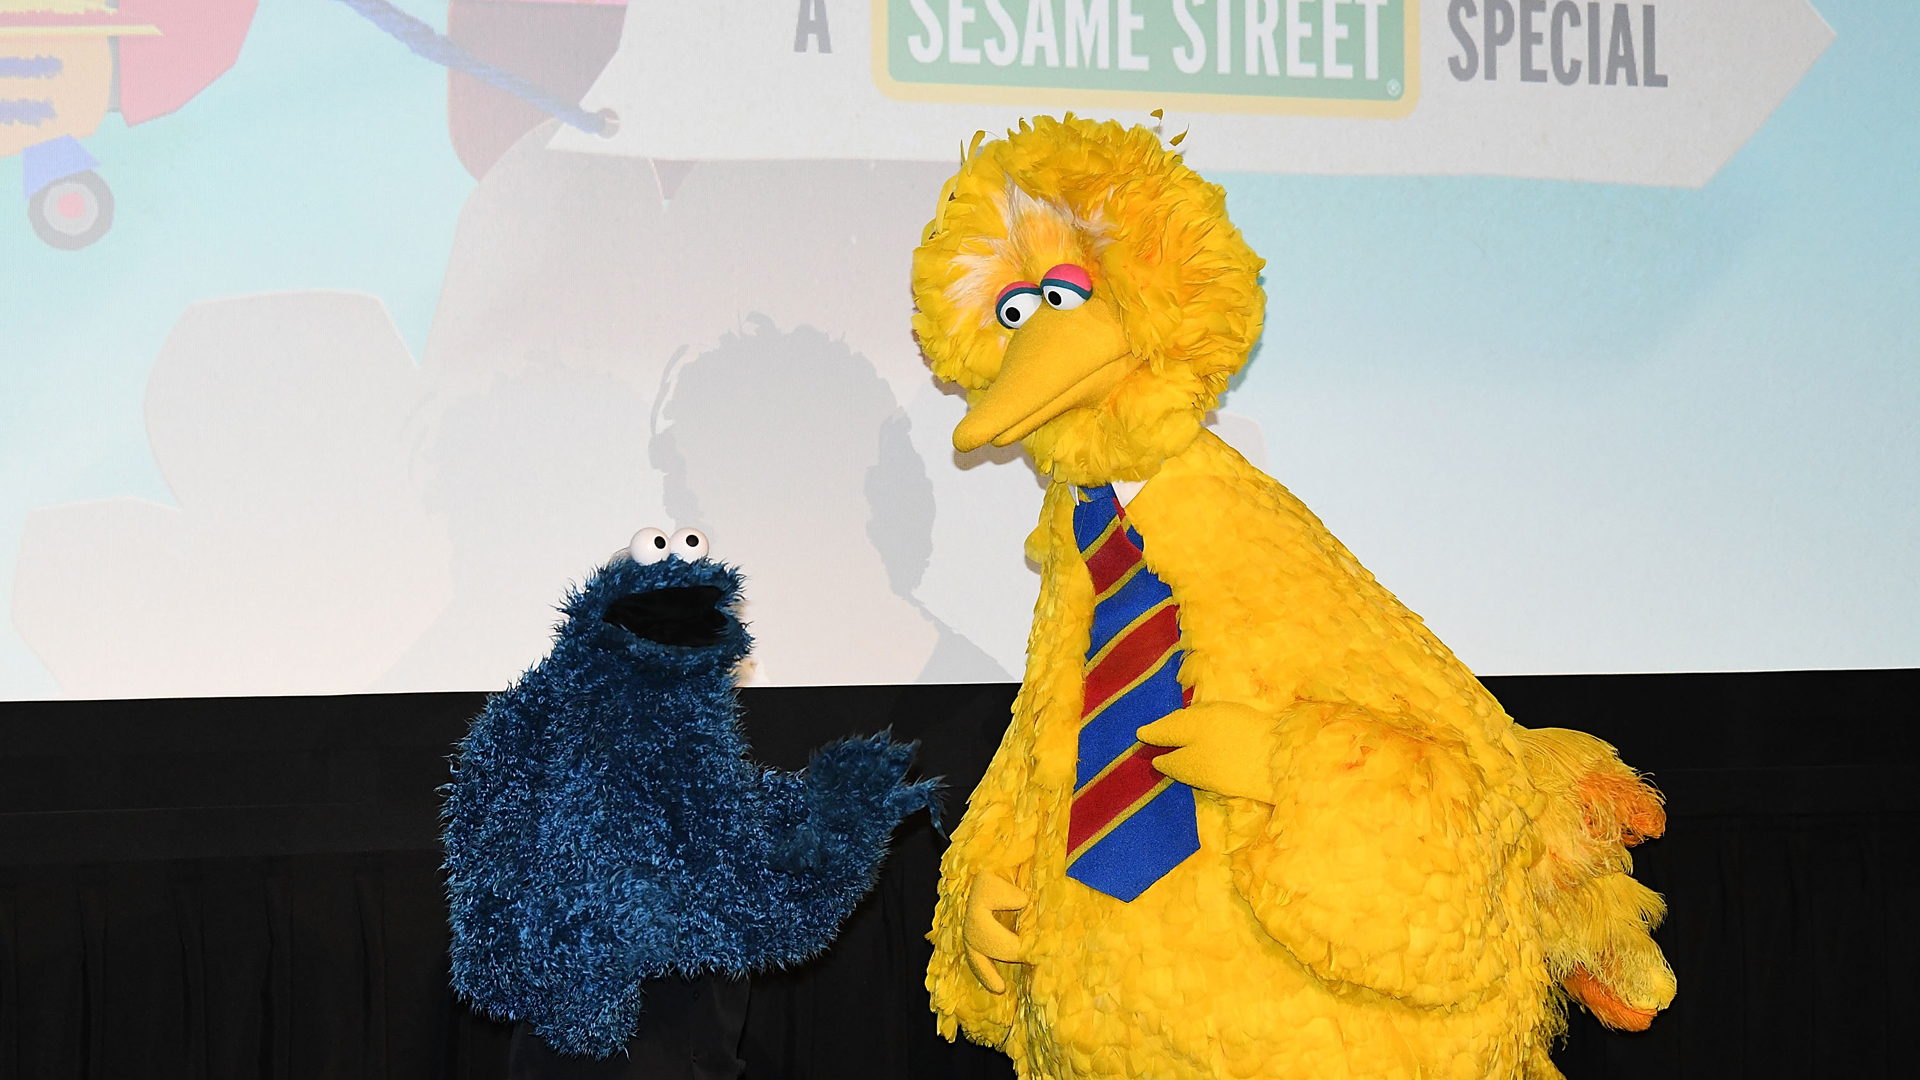 Sesame Street characters Big Bird and Cookie Monster attend HBO Premiere of Sesame Street's The Magical Wand Chase at the Metrograph on November 9, 2017 in New York City. (Credit: Slaven Vlasic/Getty Images for HBO)